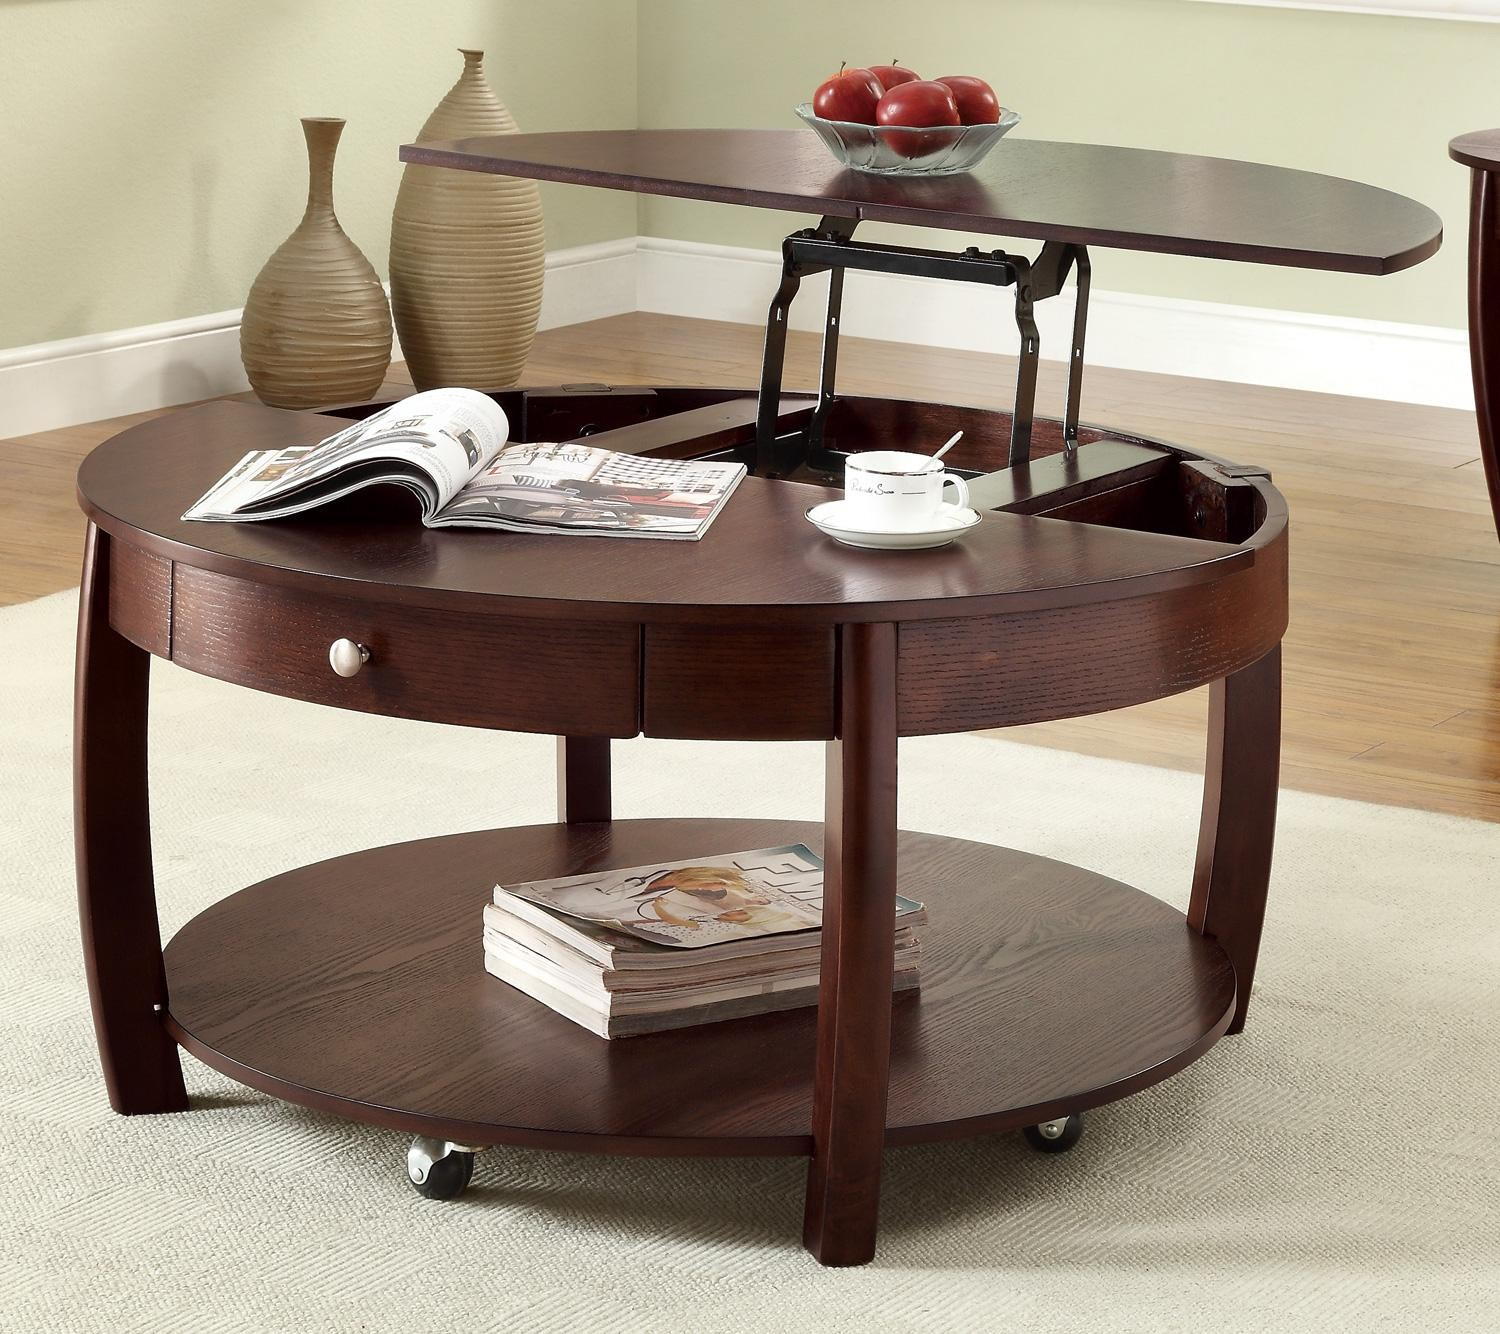 Lift Top Coffee Table Ideas And Design For Living Room Decor Round Lift Top Coffee Table (View 2 of 10)